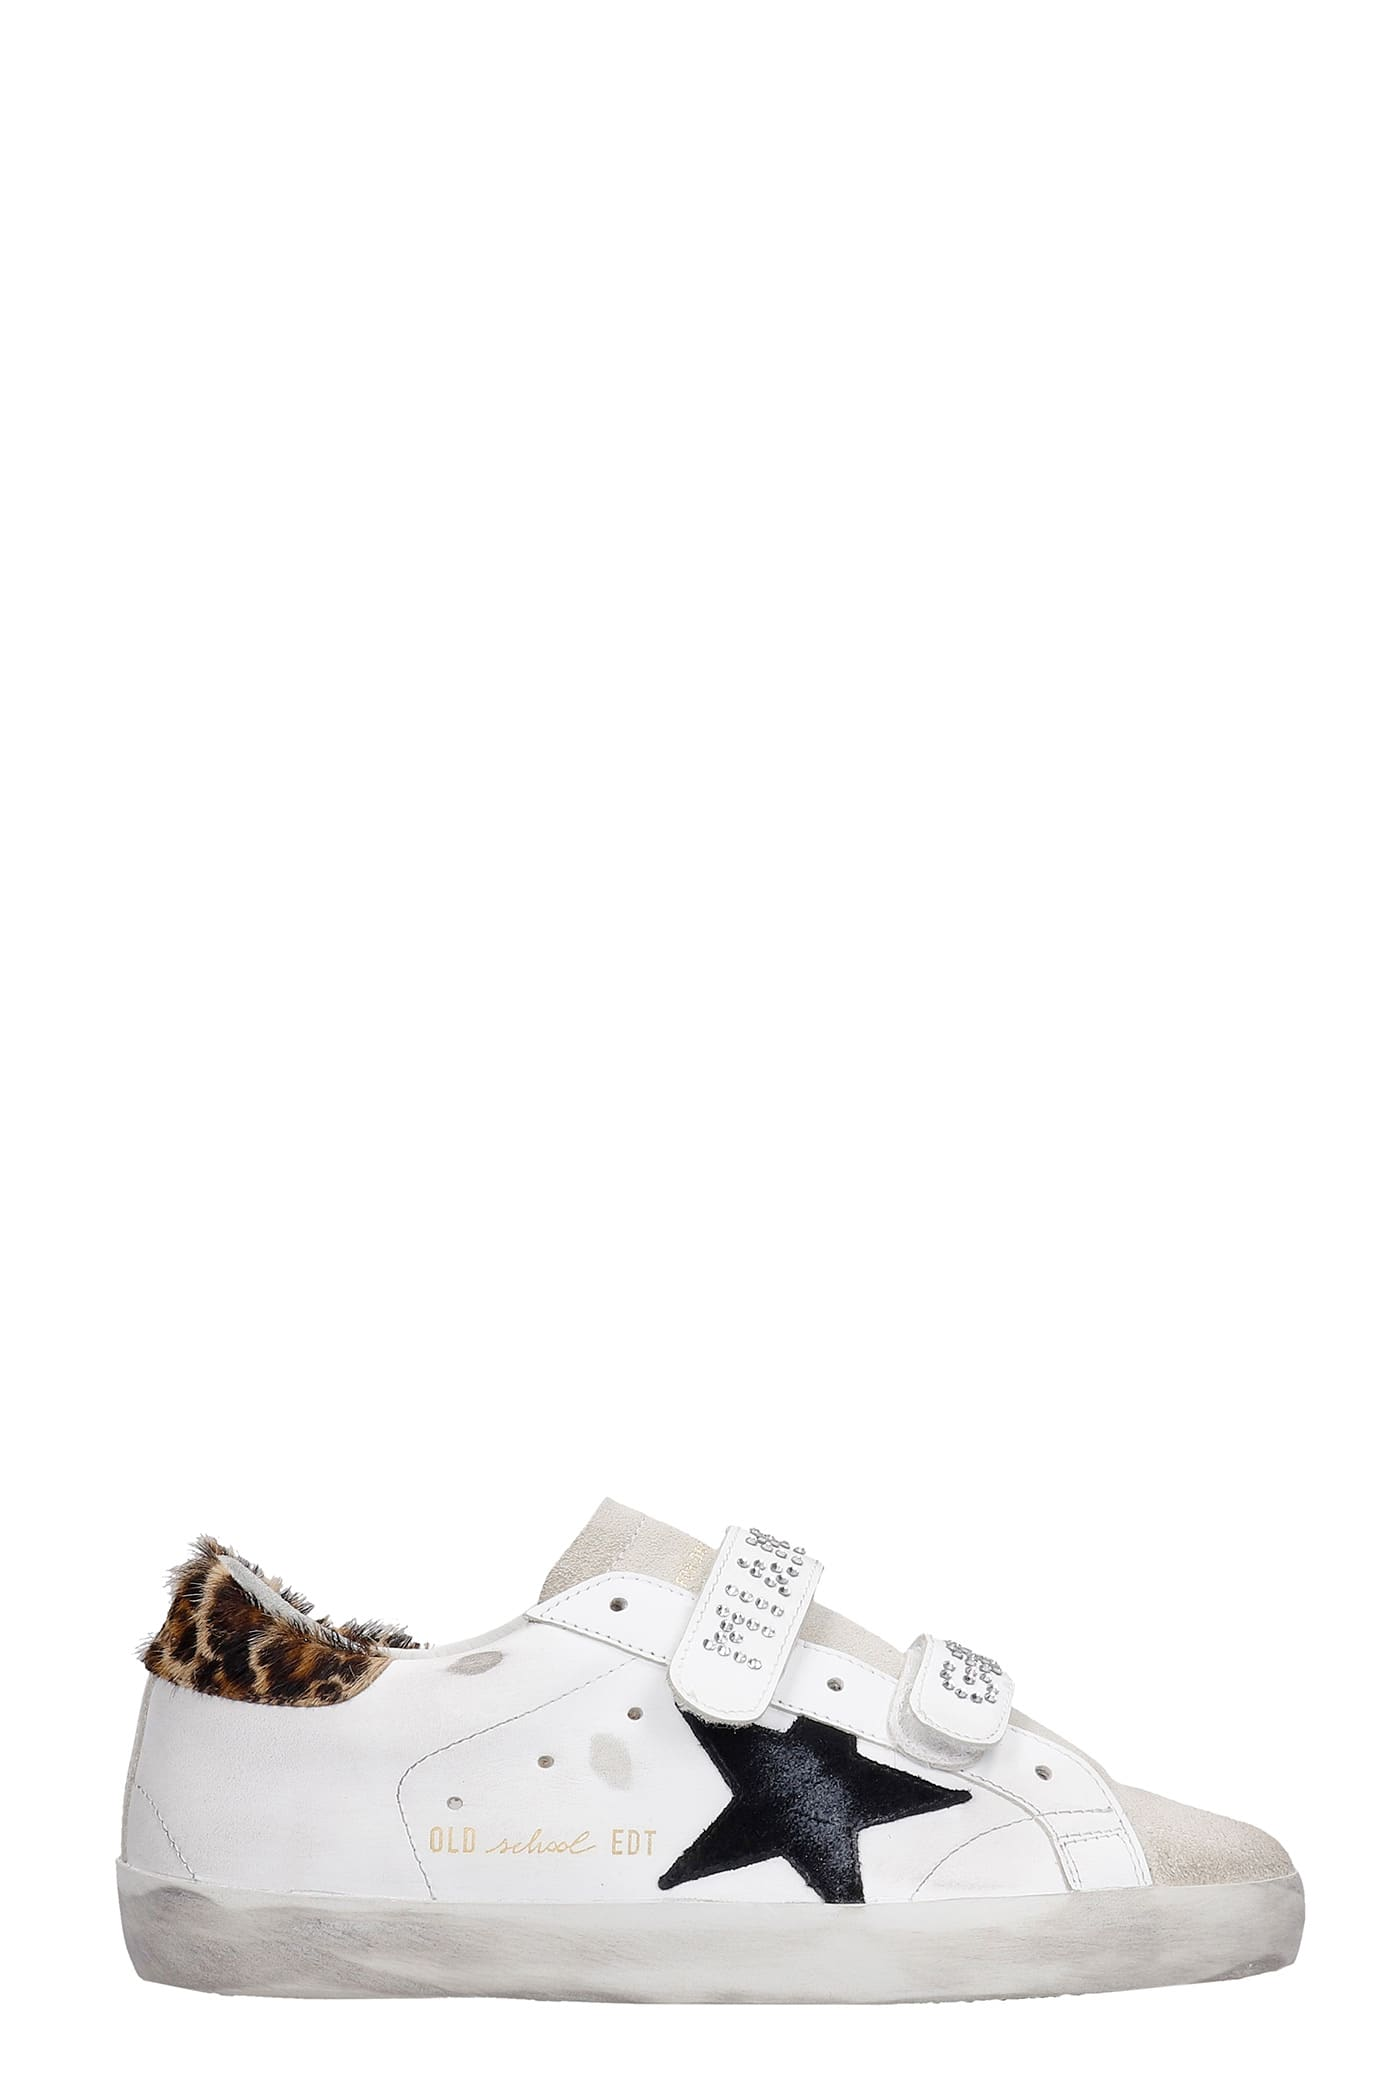 Golden Goose Old School Sneakers In White Suede And Leather